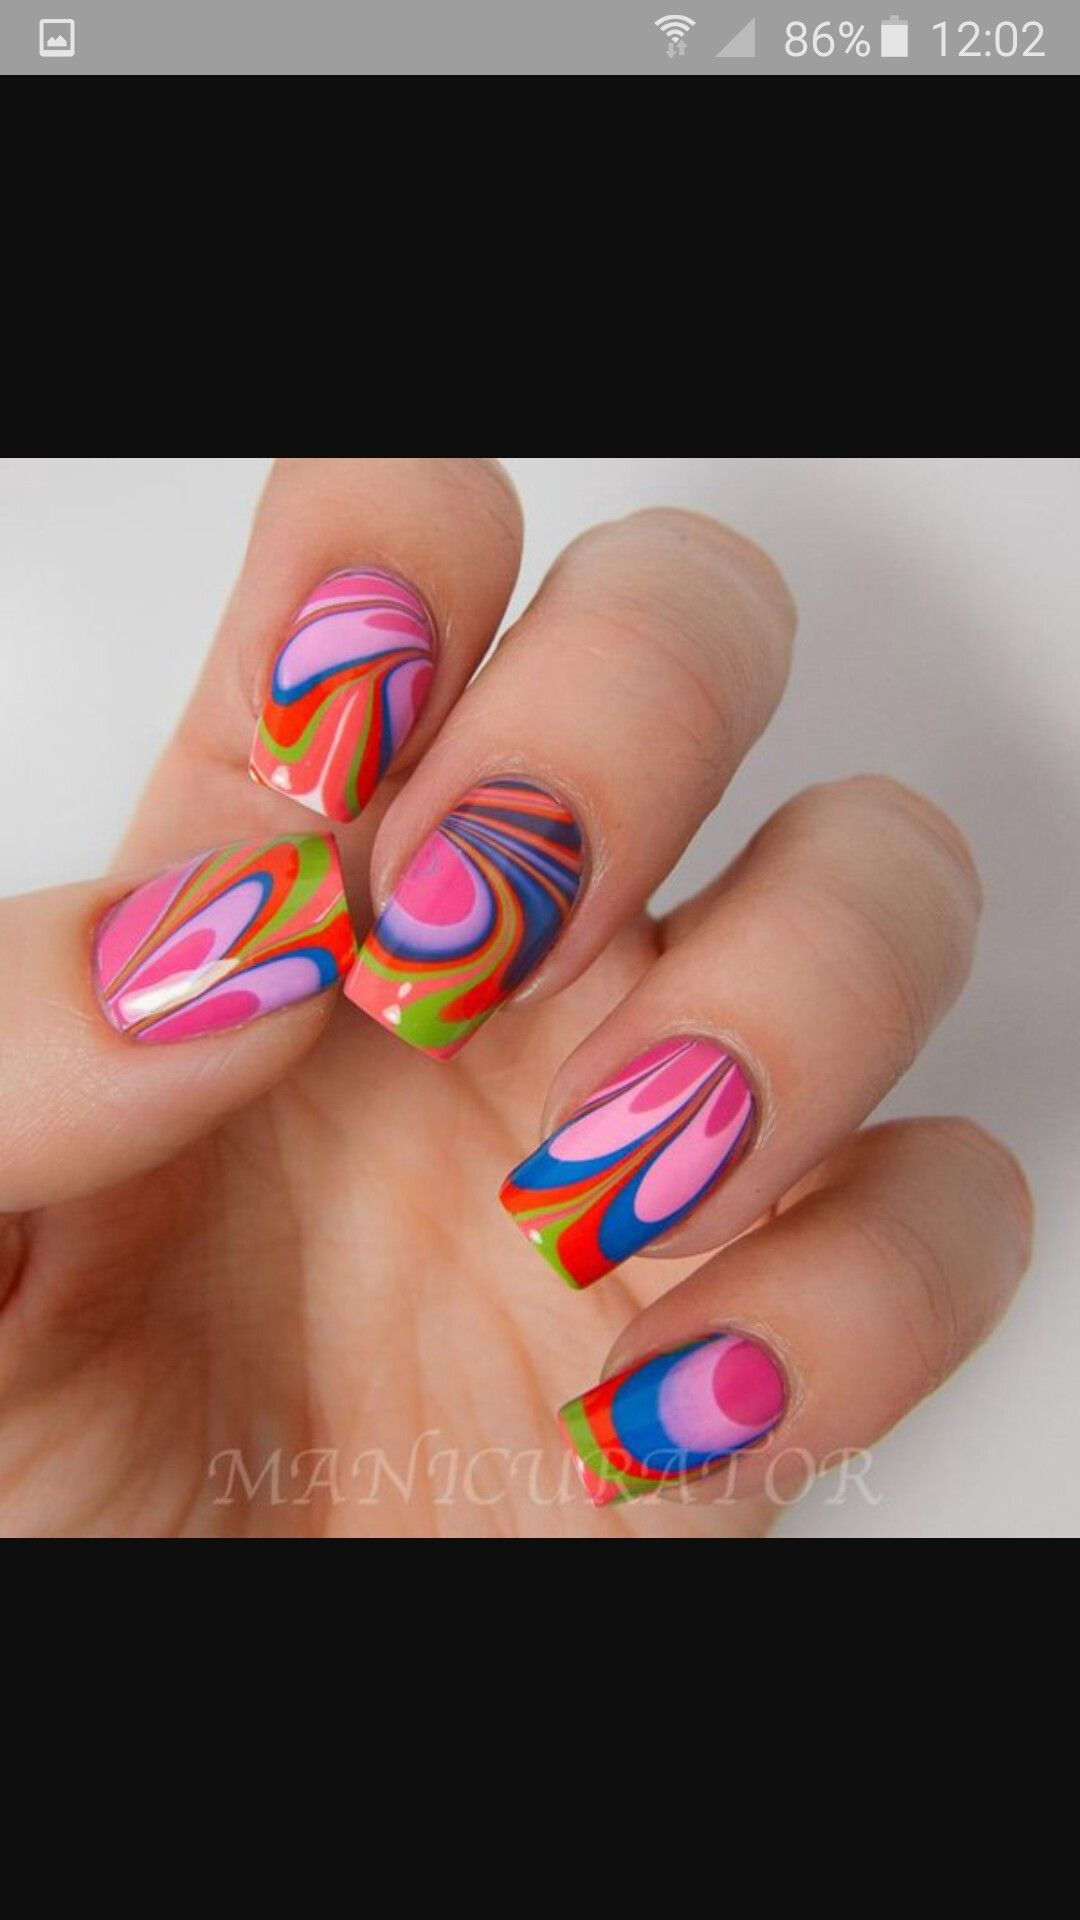 Pin By Nicole On Make Up And Nails Pinterest Art Tutorials